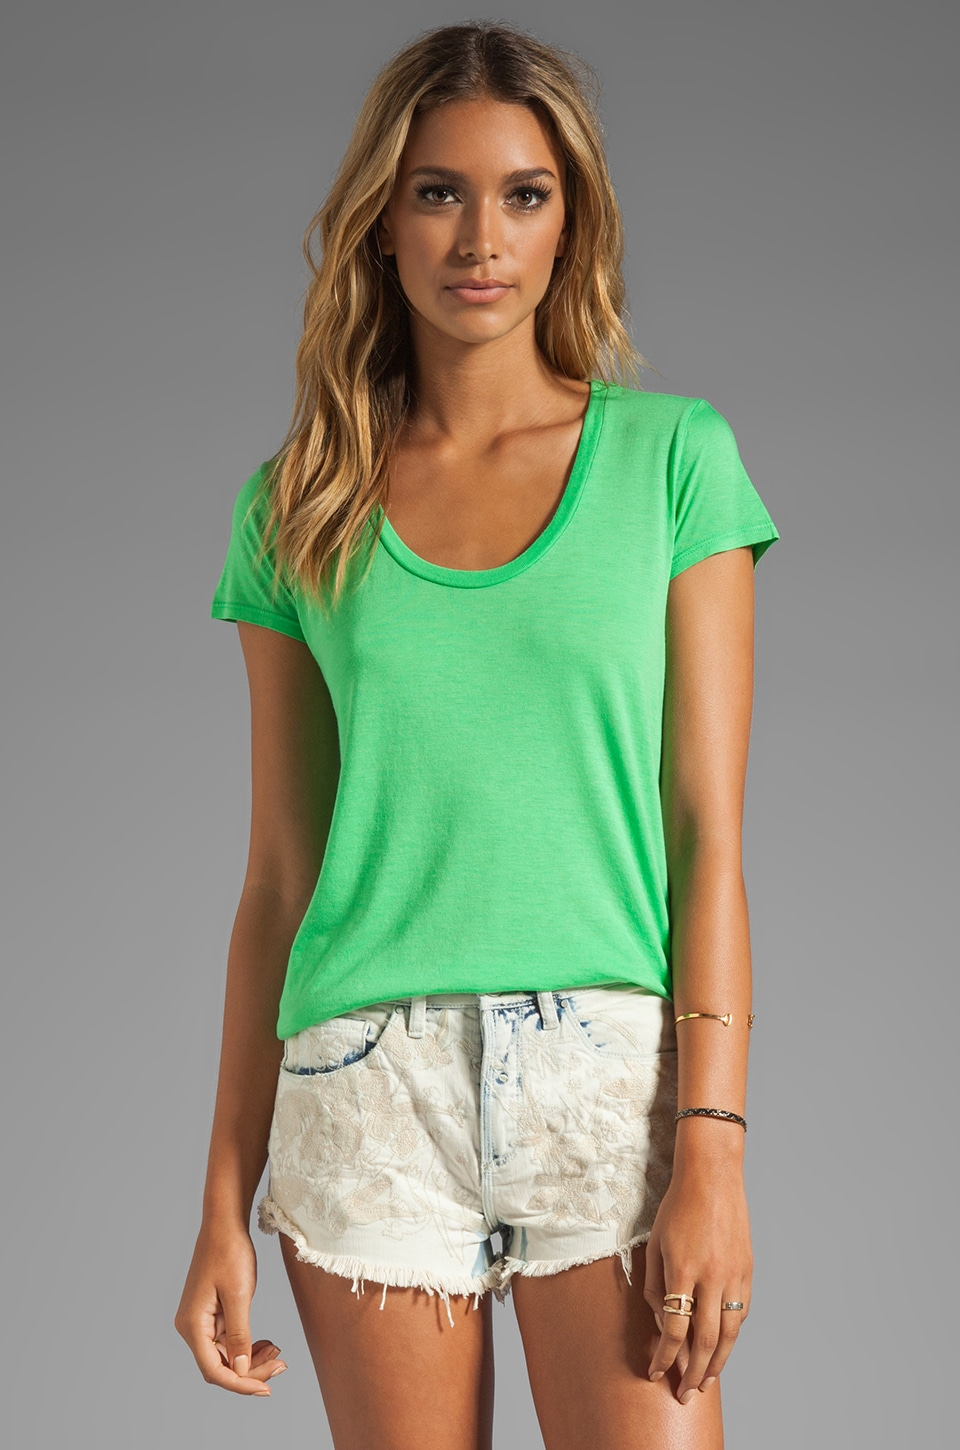 Splendid Jersey Short Sleeve Tee in Apple Green